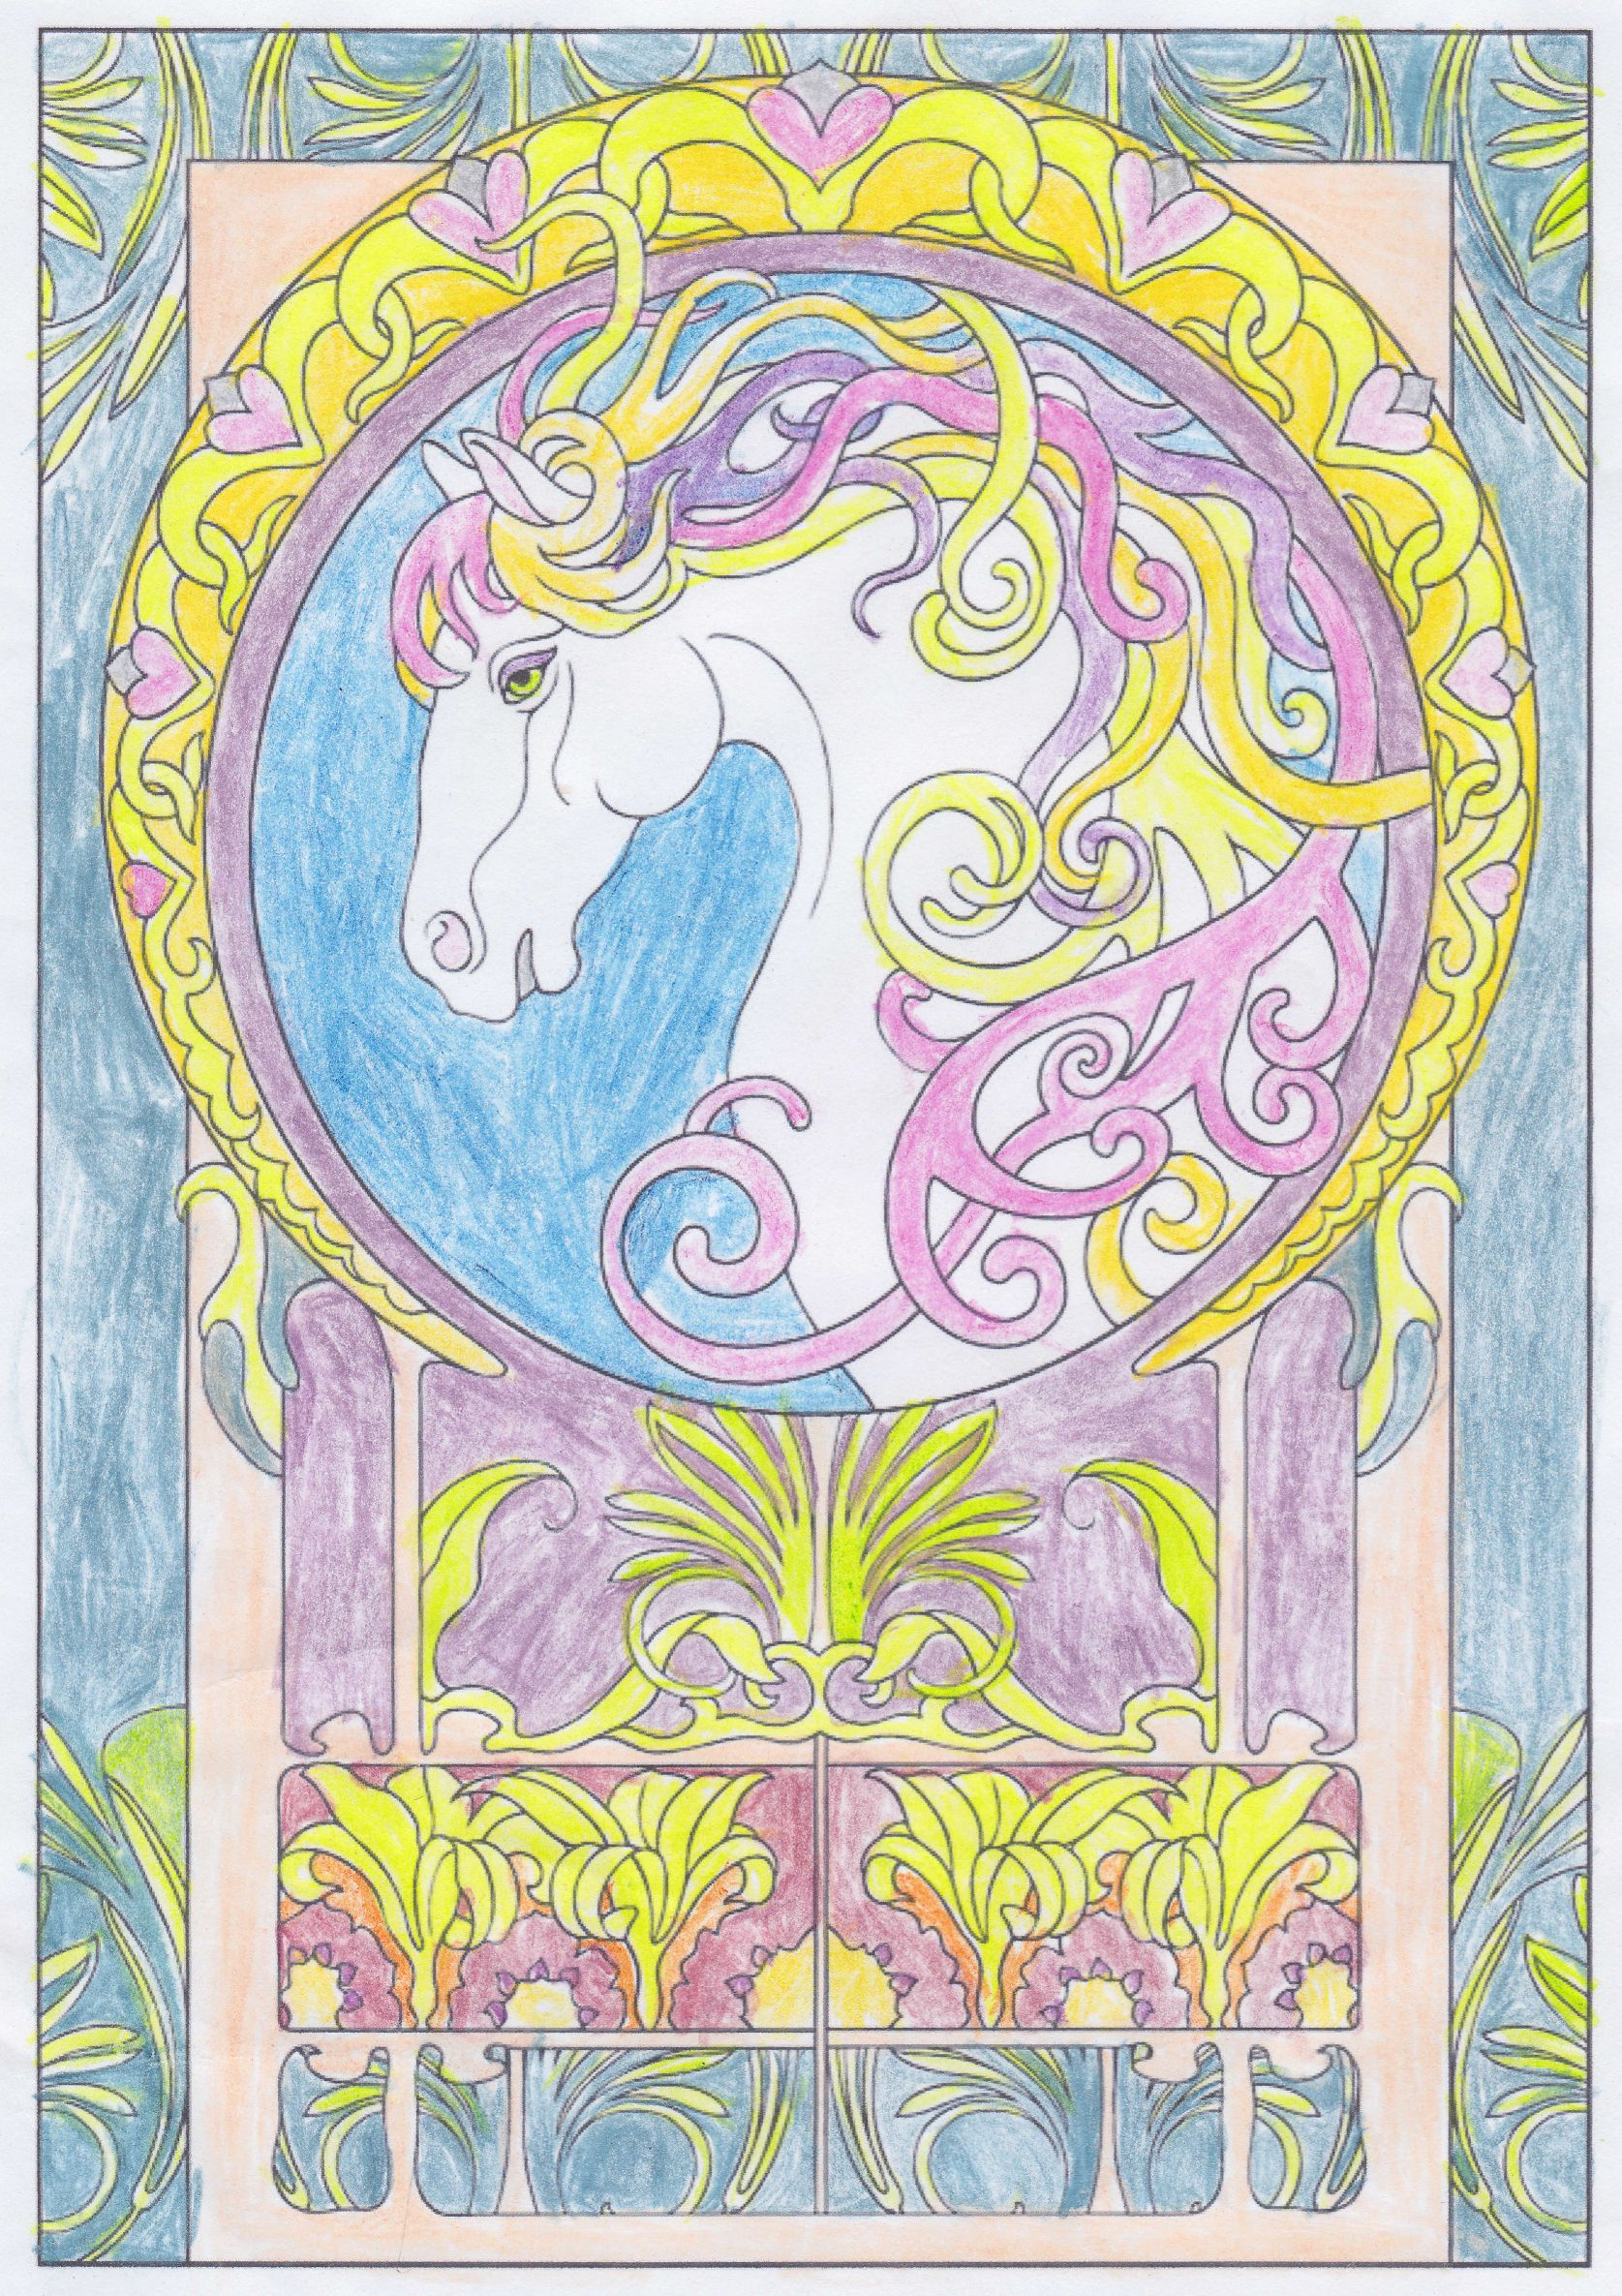 - Emily R. (Under 12 Division) From Art Nouveau Animal Designs